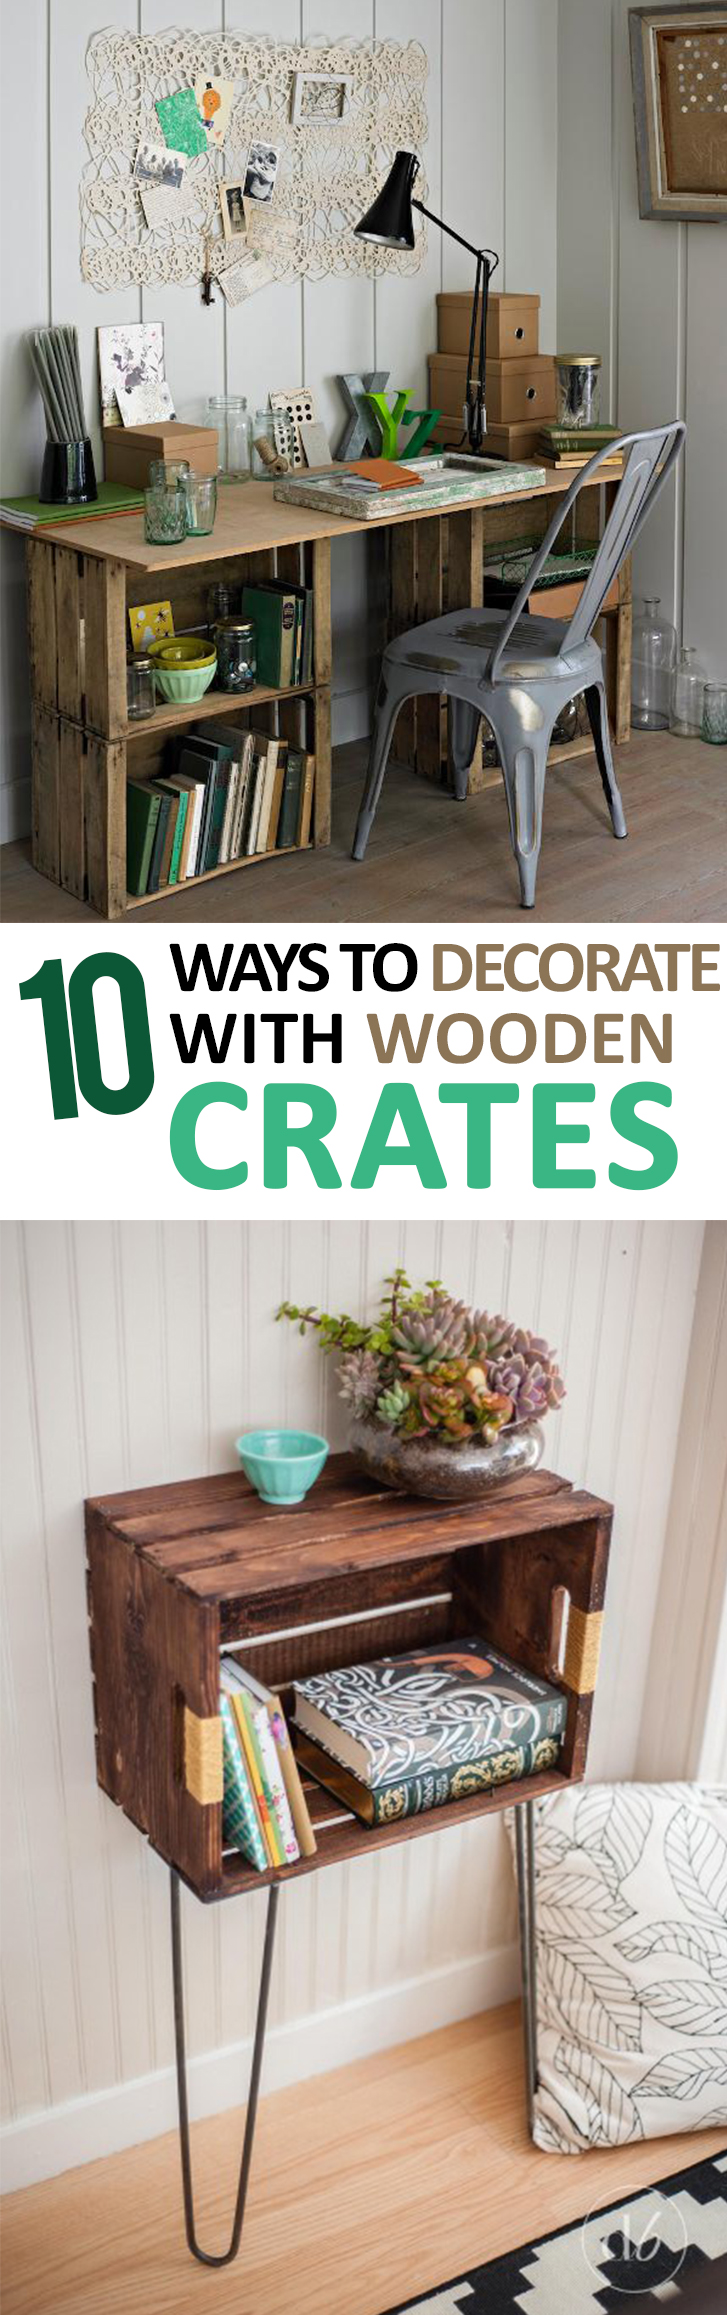 10-ways-to-decorate-with-wooden-crates